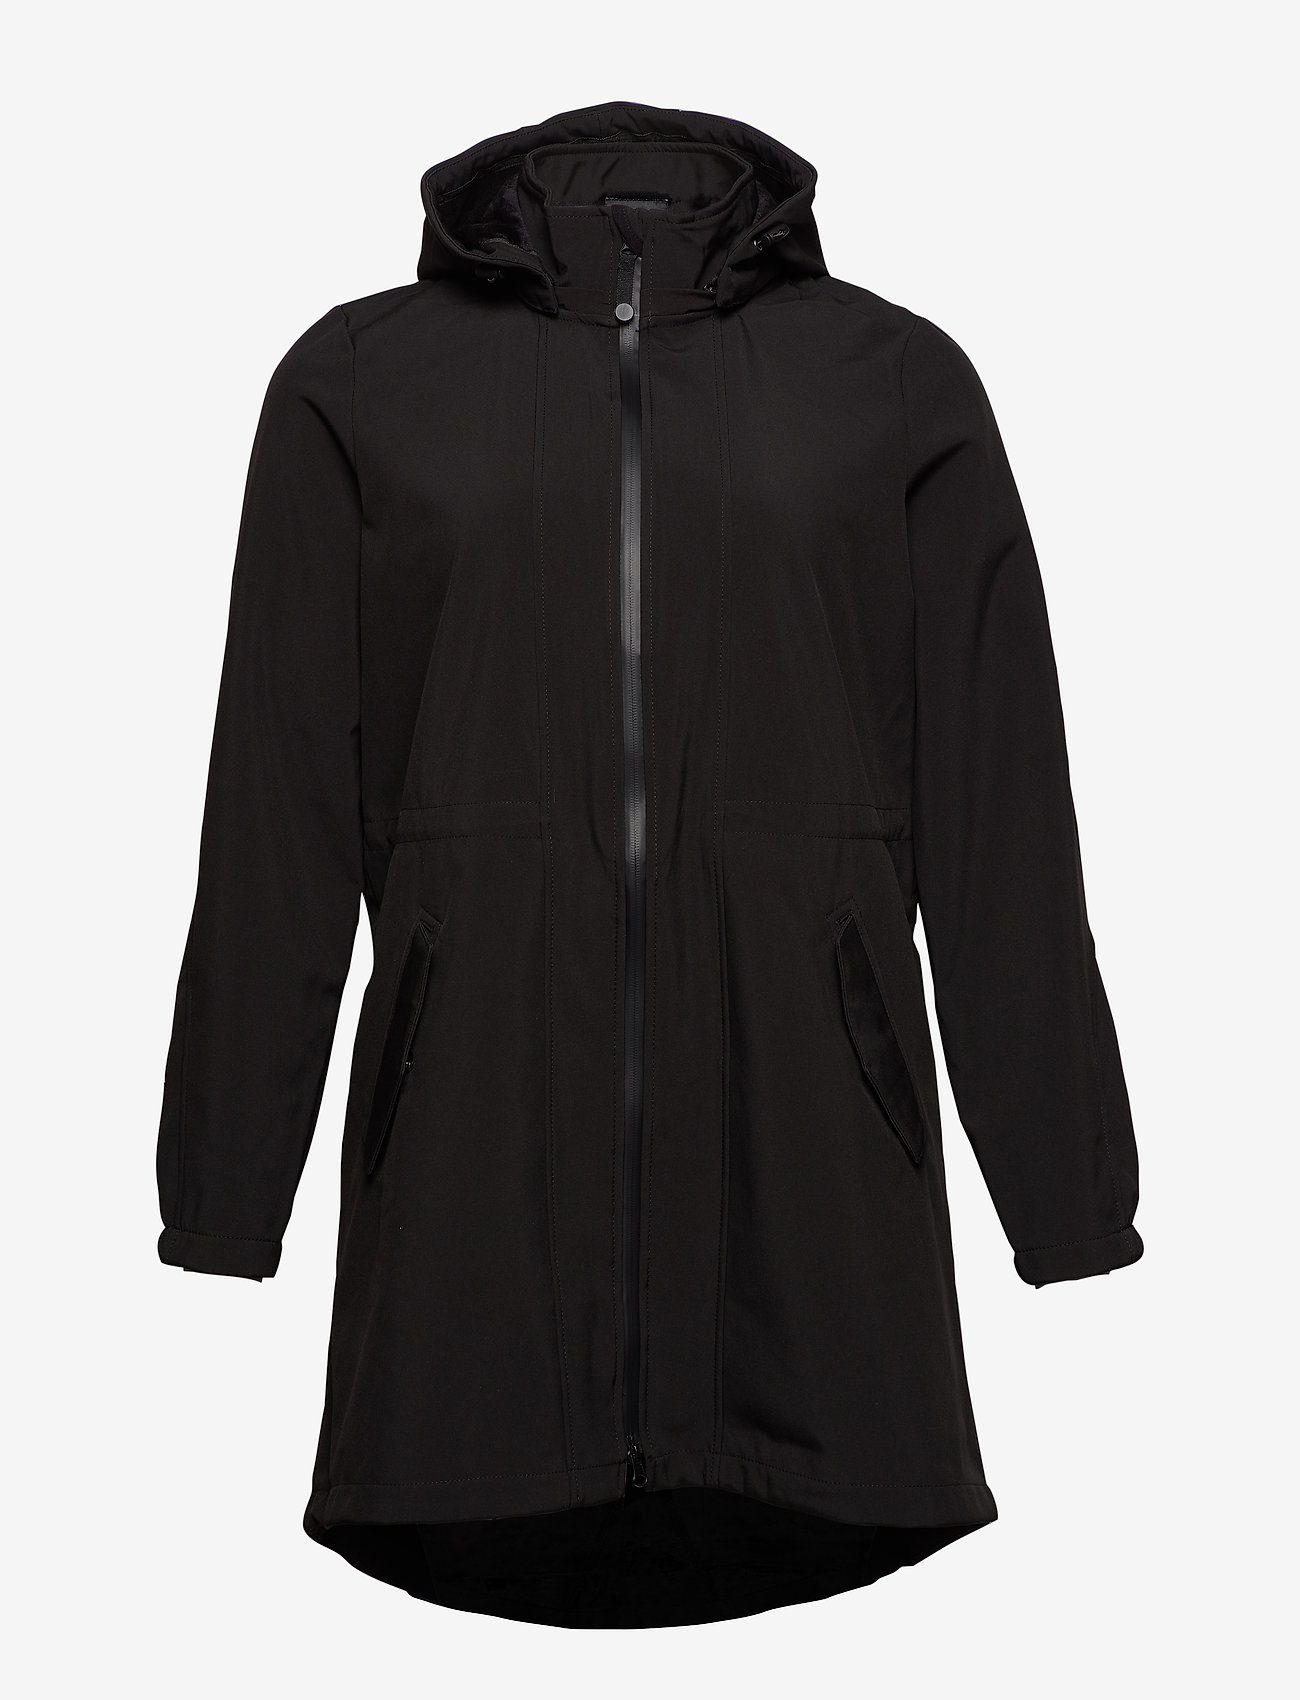 Zizzi ZAspen, Soft shell jacket - Jacken & Mäntel BLACK - Damen Kleidung